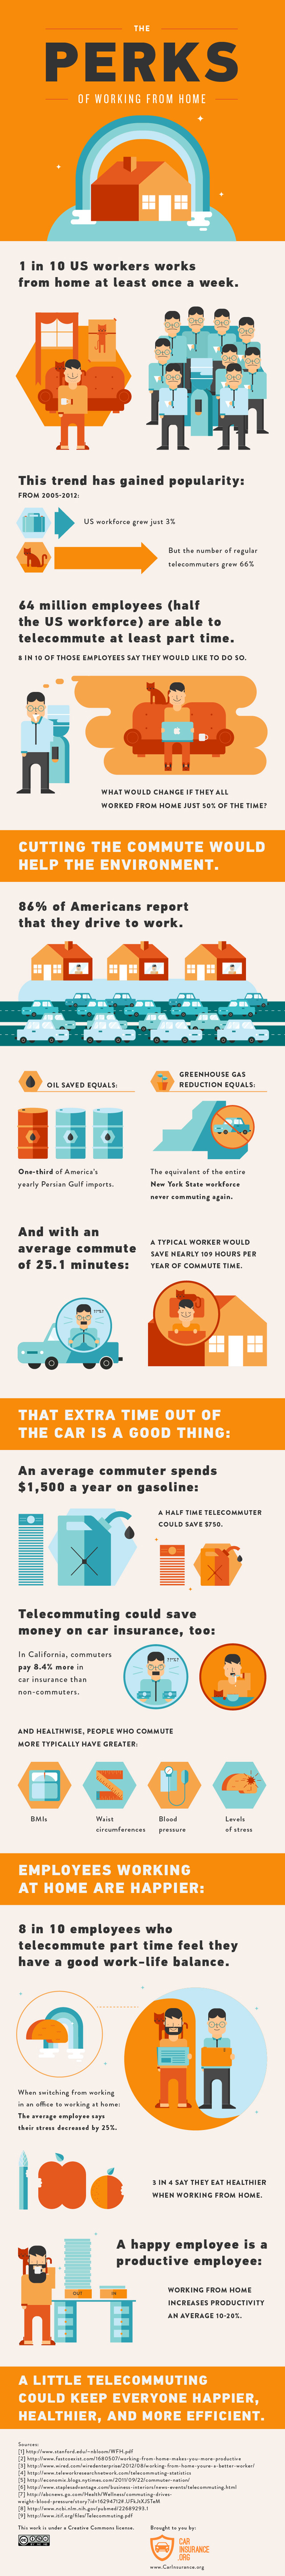 Working From Home Savings-Infographic